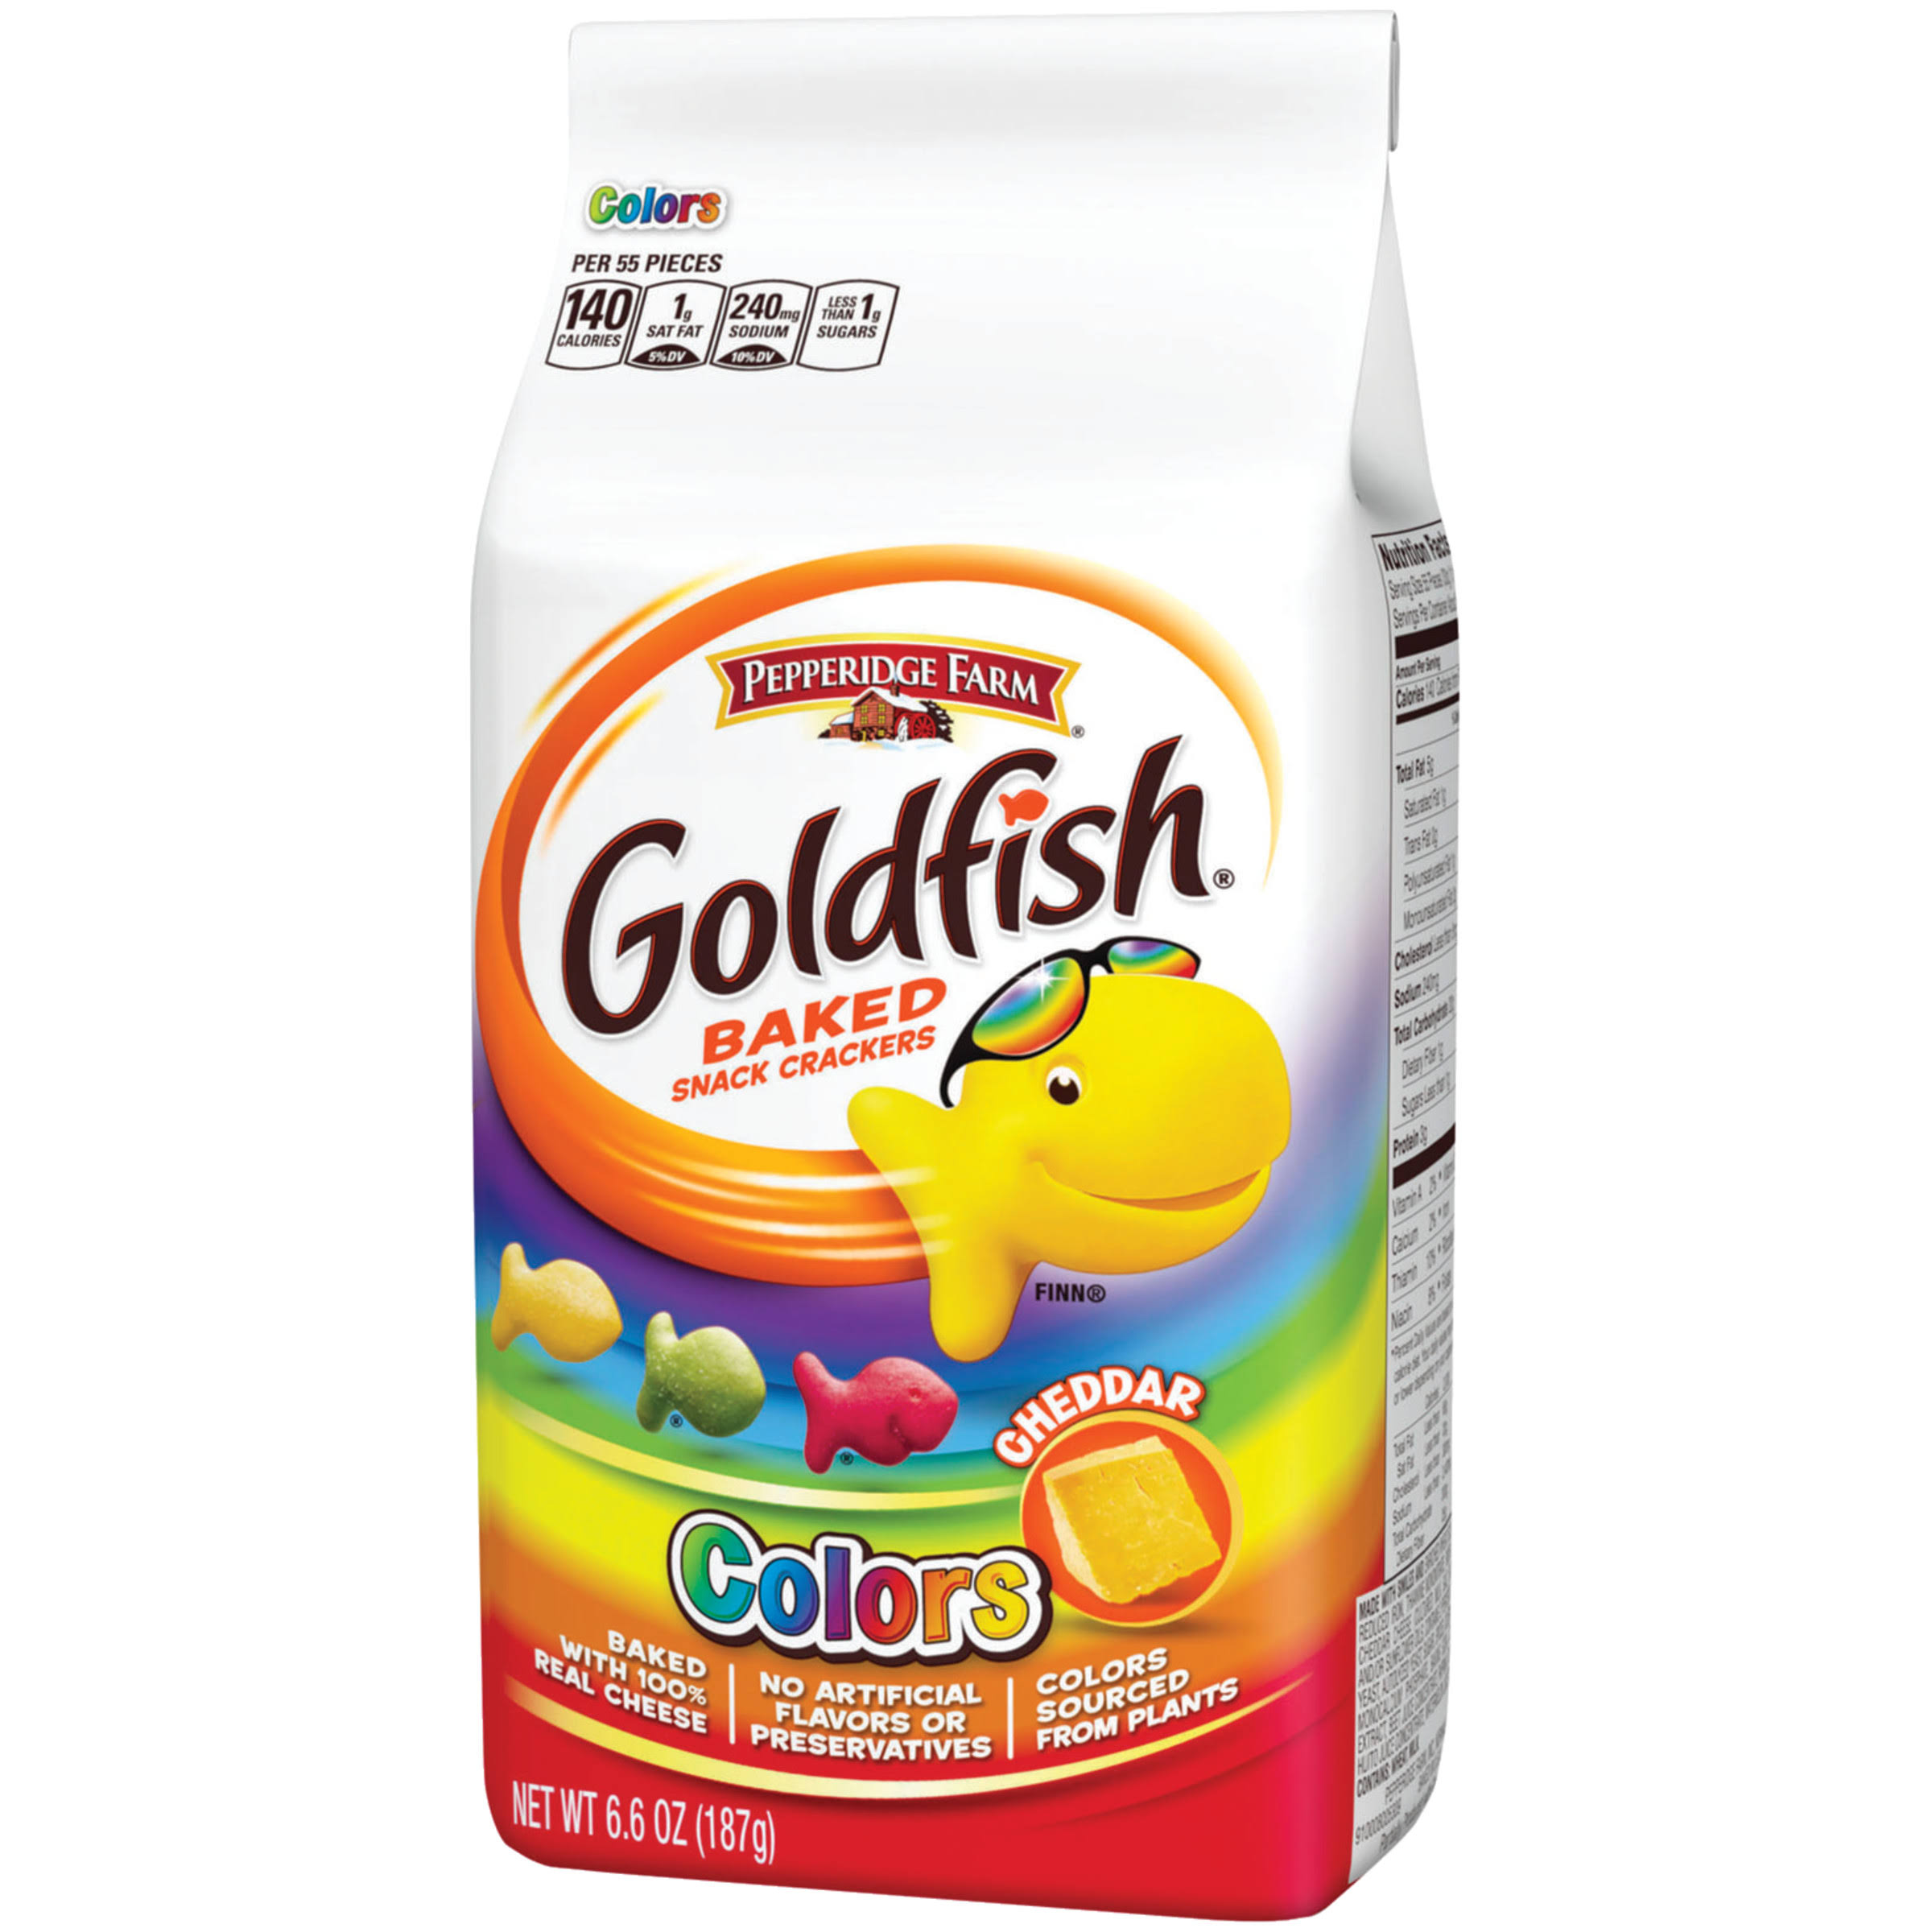 Goldfish Colors - Cheddar